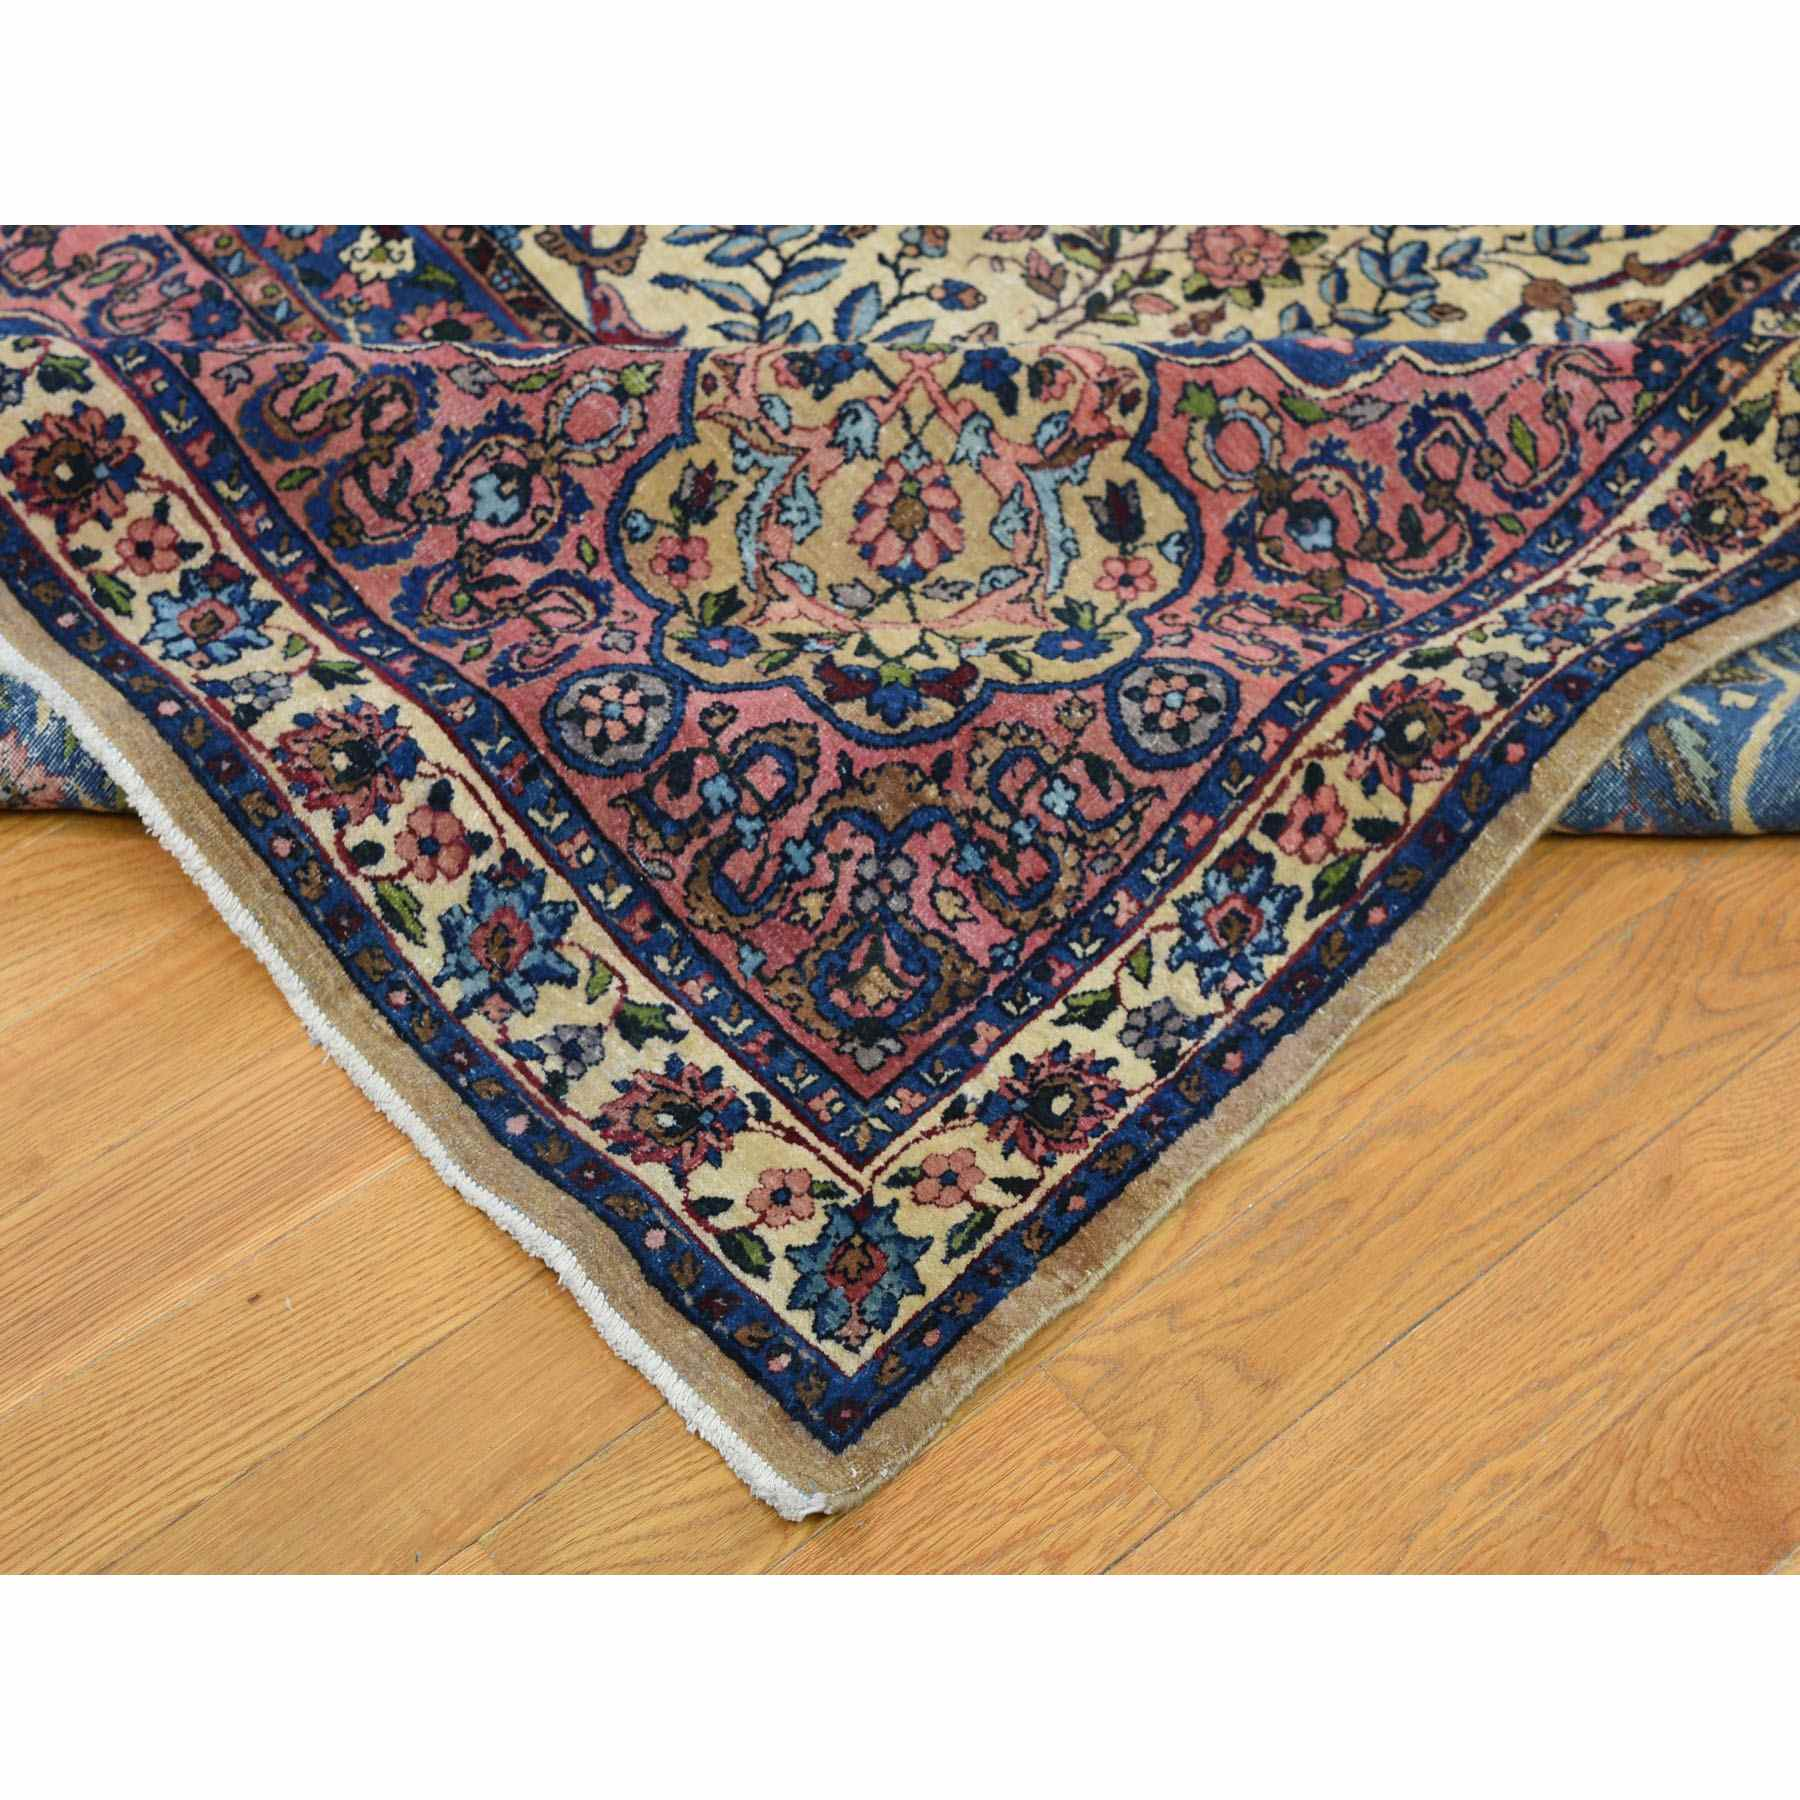 Antique-Hand-Knotted-Rug-235405